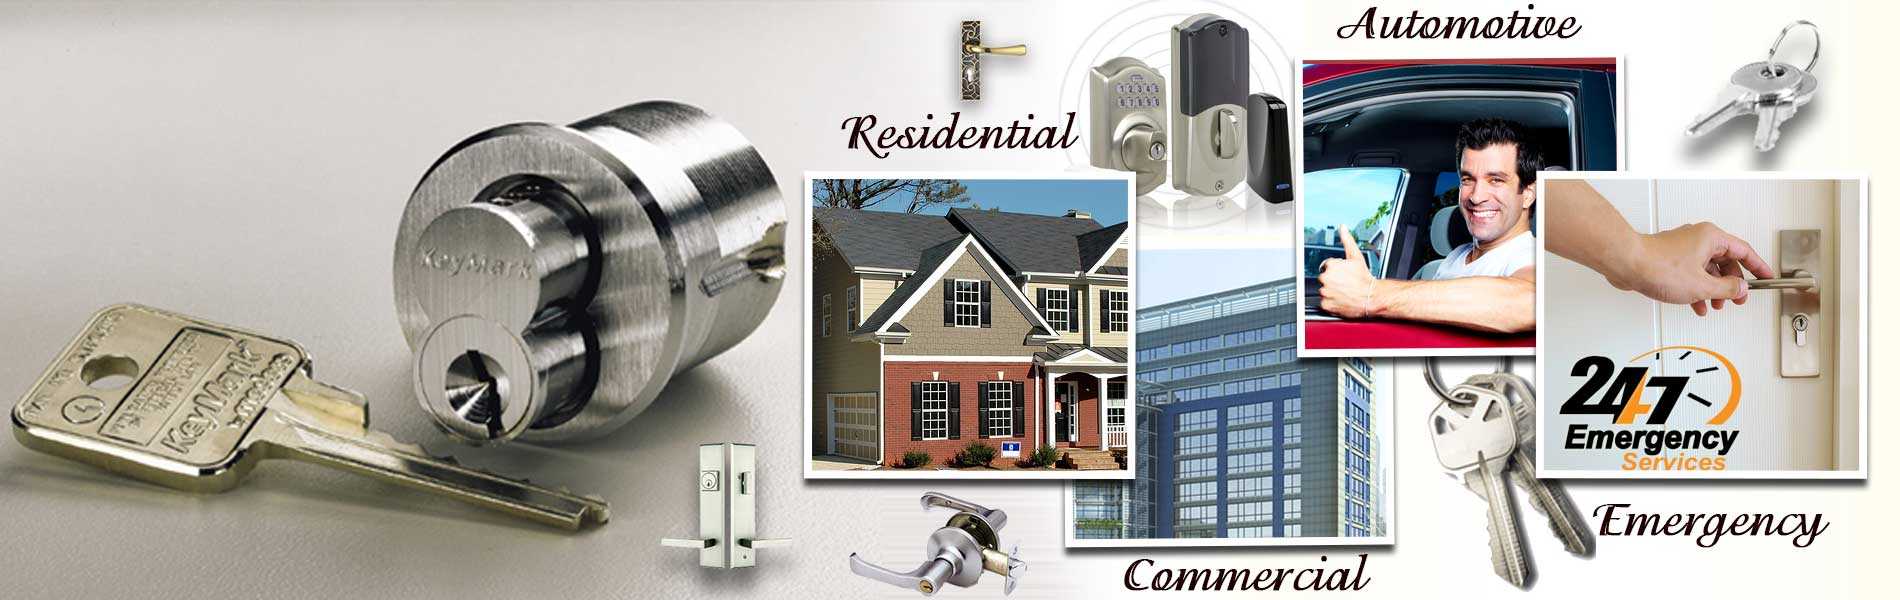 Town Center Locksmith Shop Alexandria, VA 703-586-9681